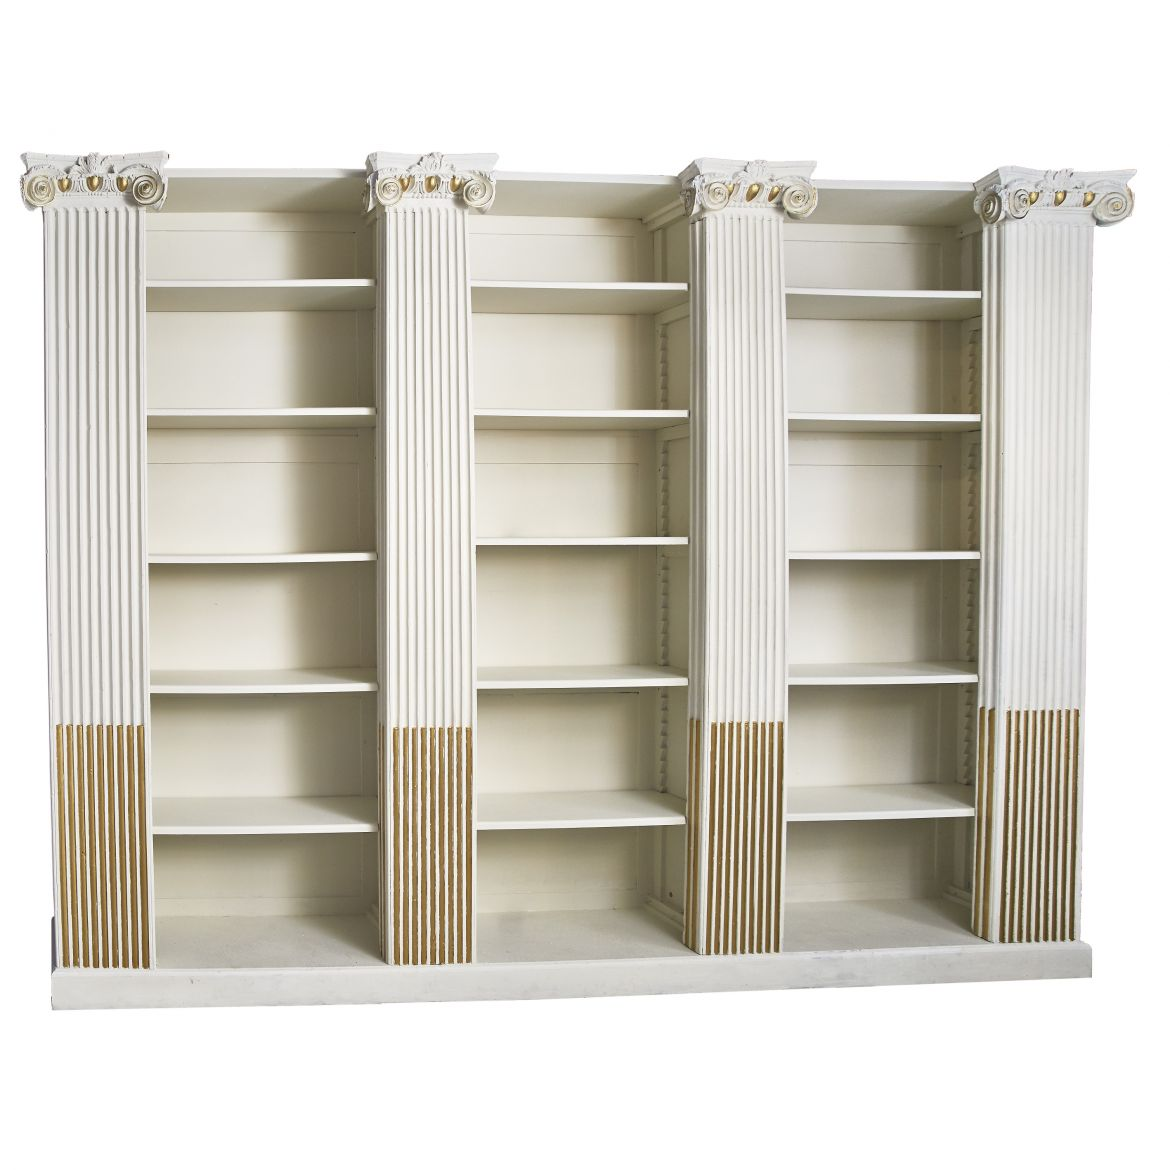 Large Neoclassical Bookcase